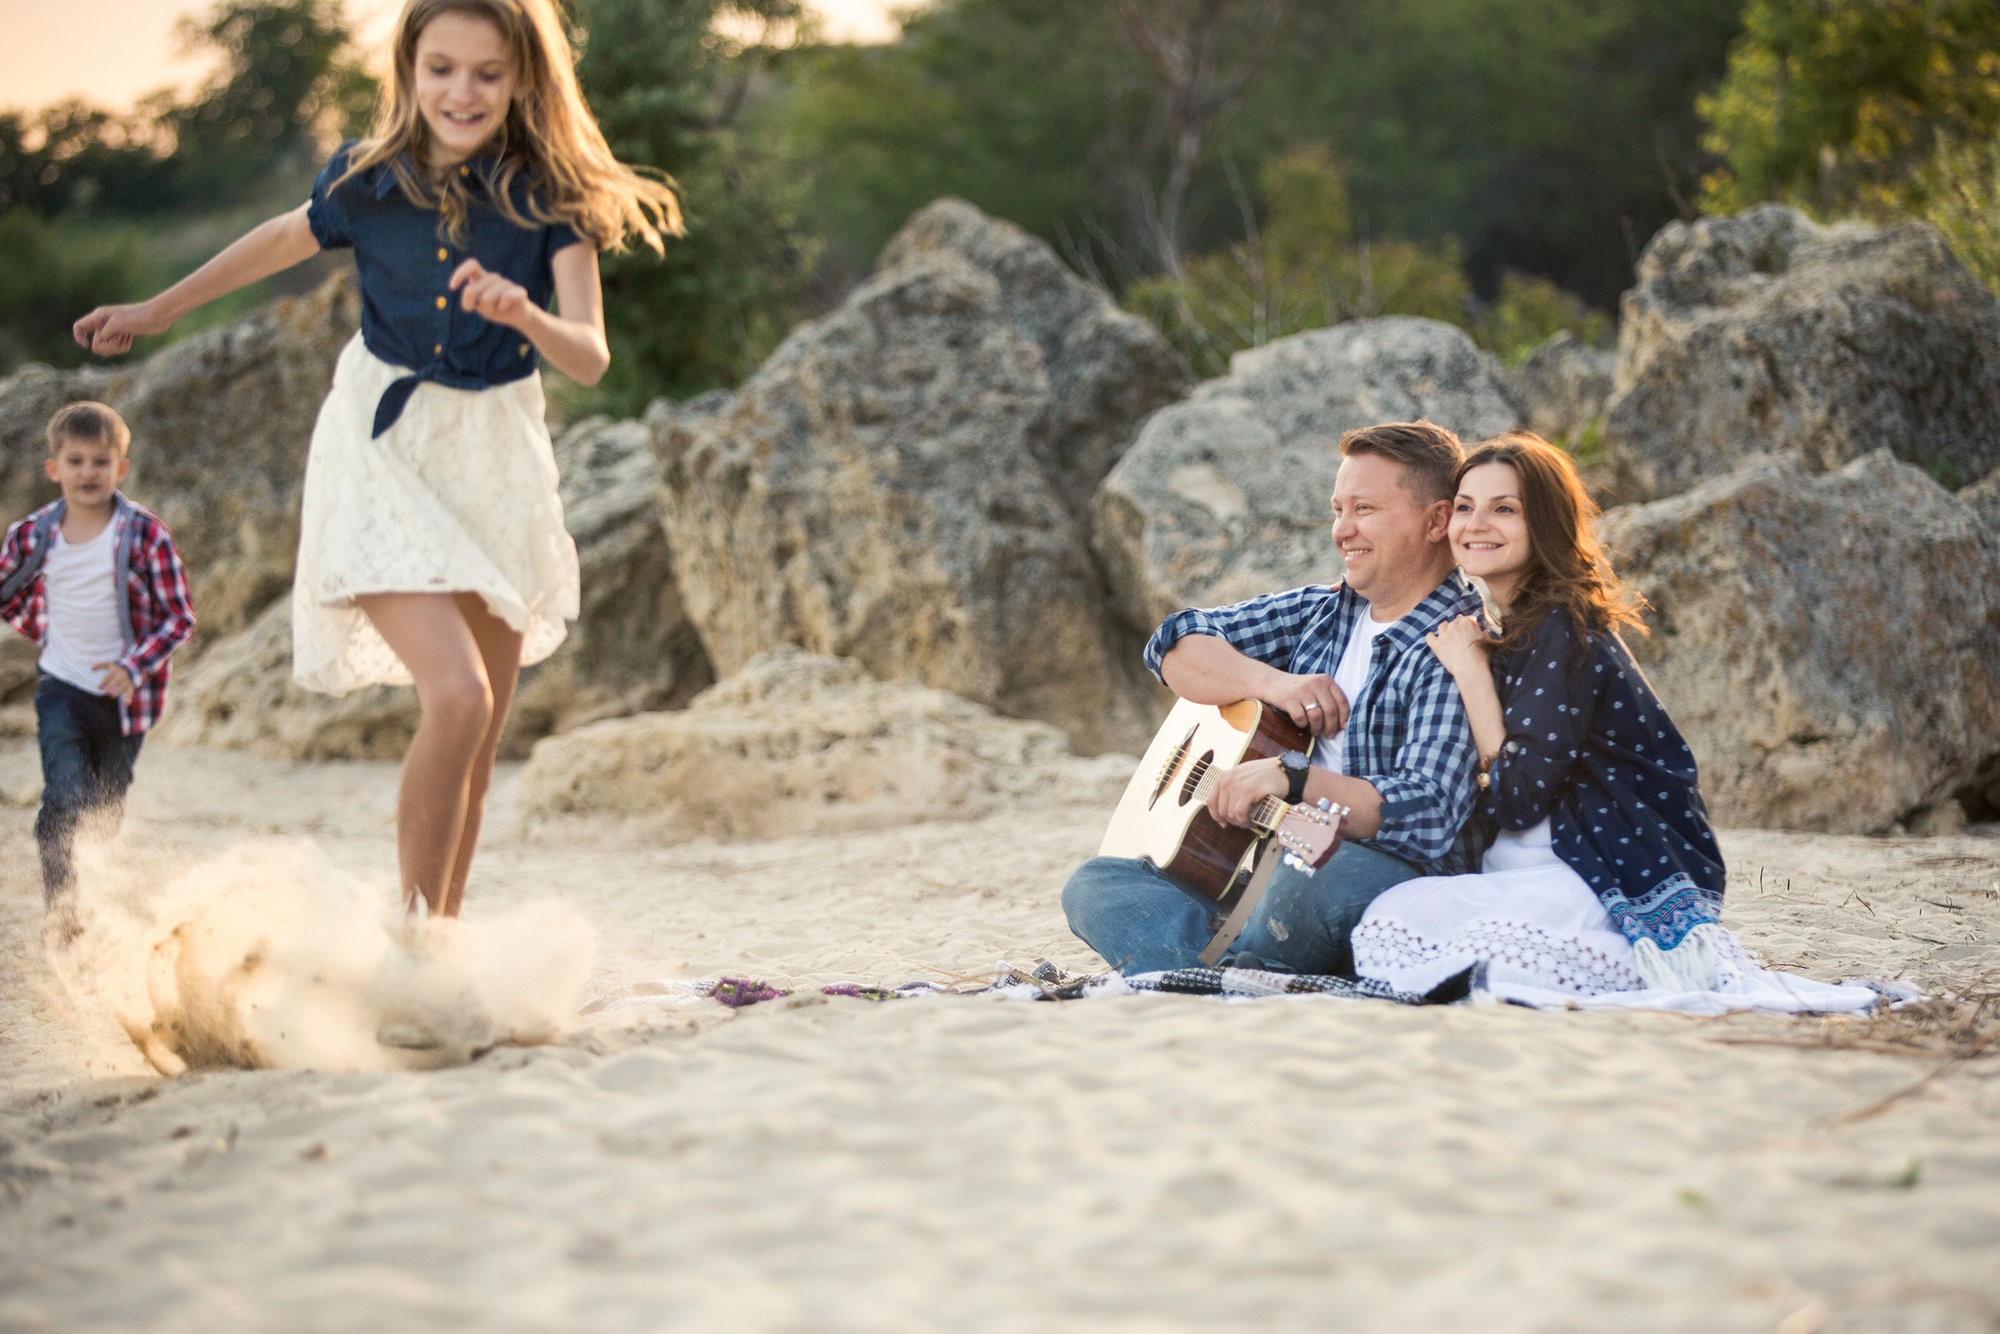 Yes, you can find romance on vacation with kids!